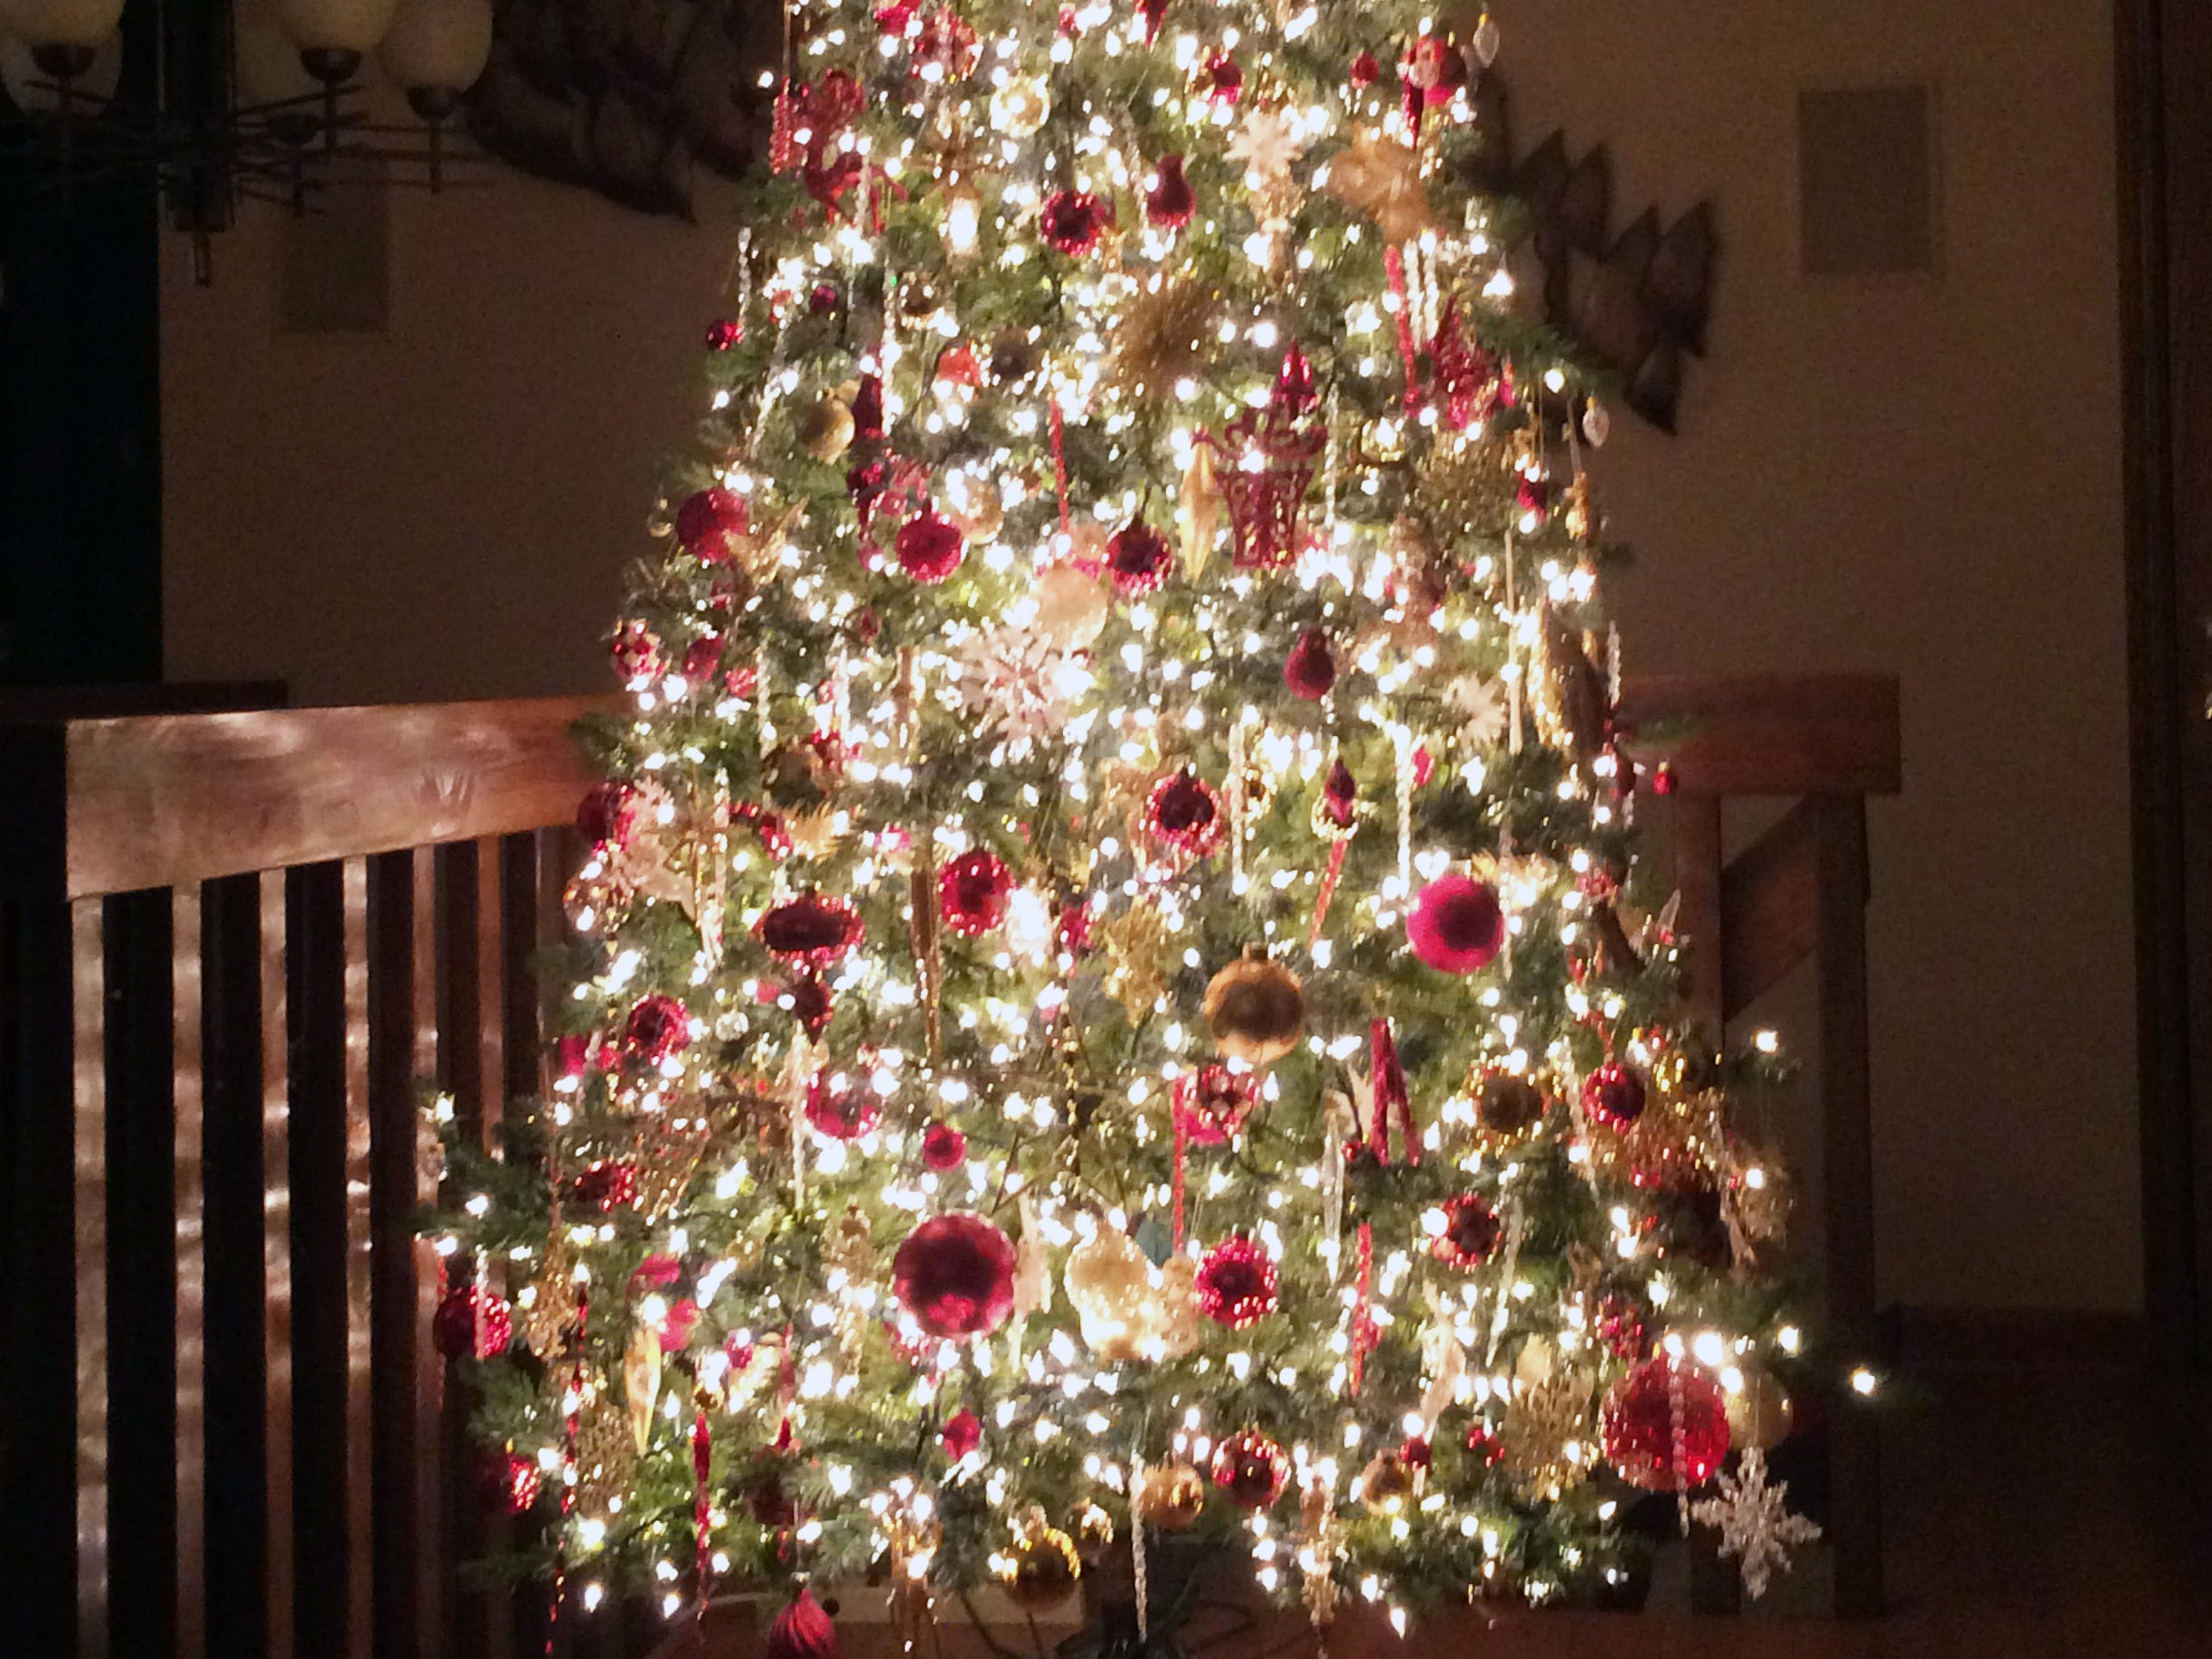 According to Kim Harrison, Dawn Frahm's original tree looked like a Charlie Brown tree. With Harrison's help, it doesn't anymore.